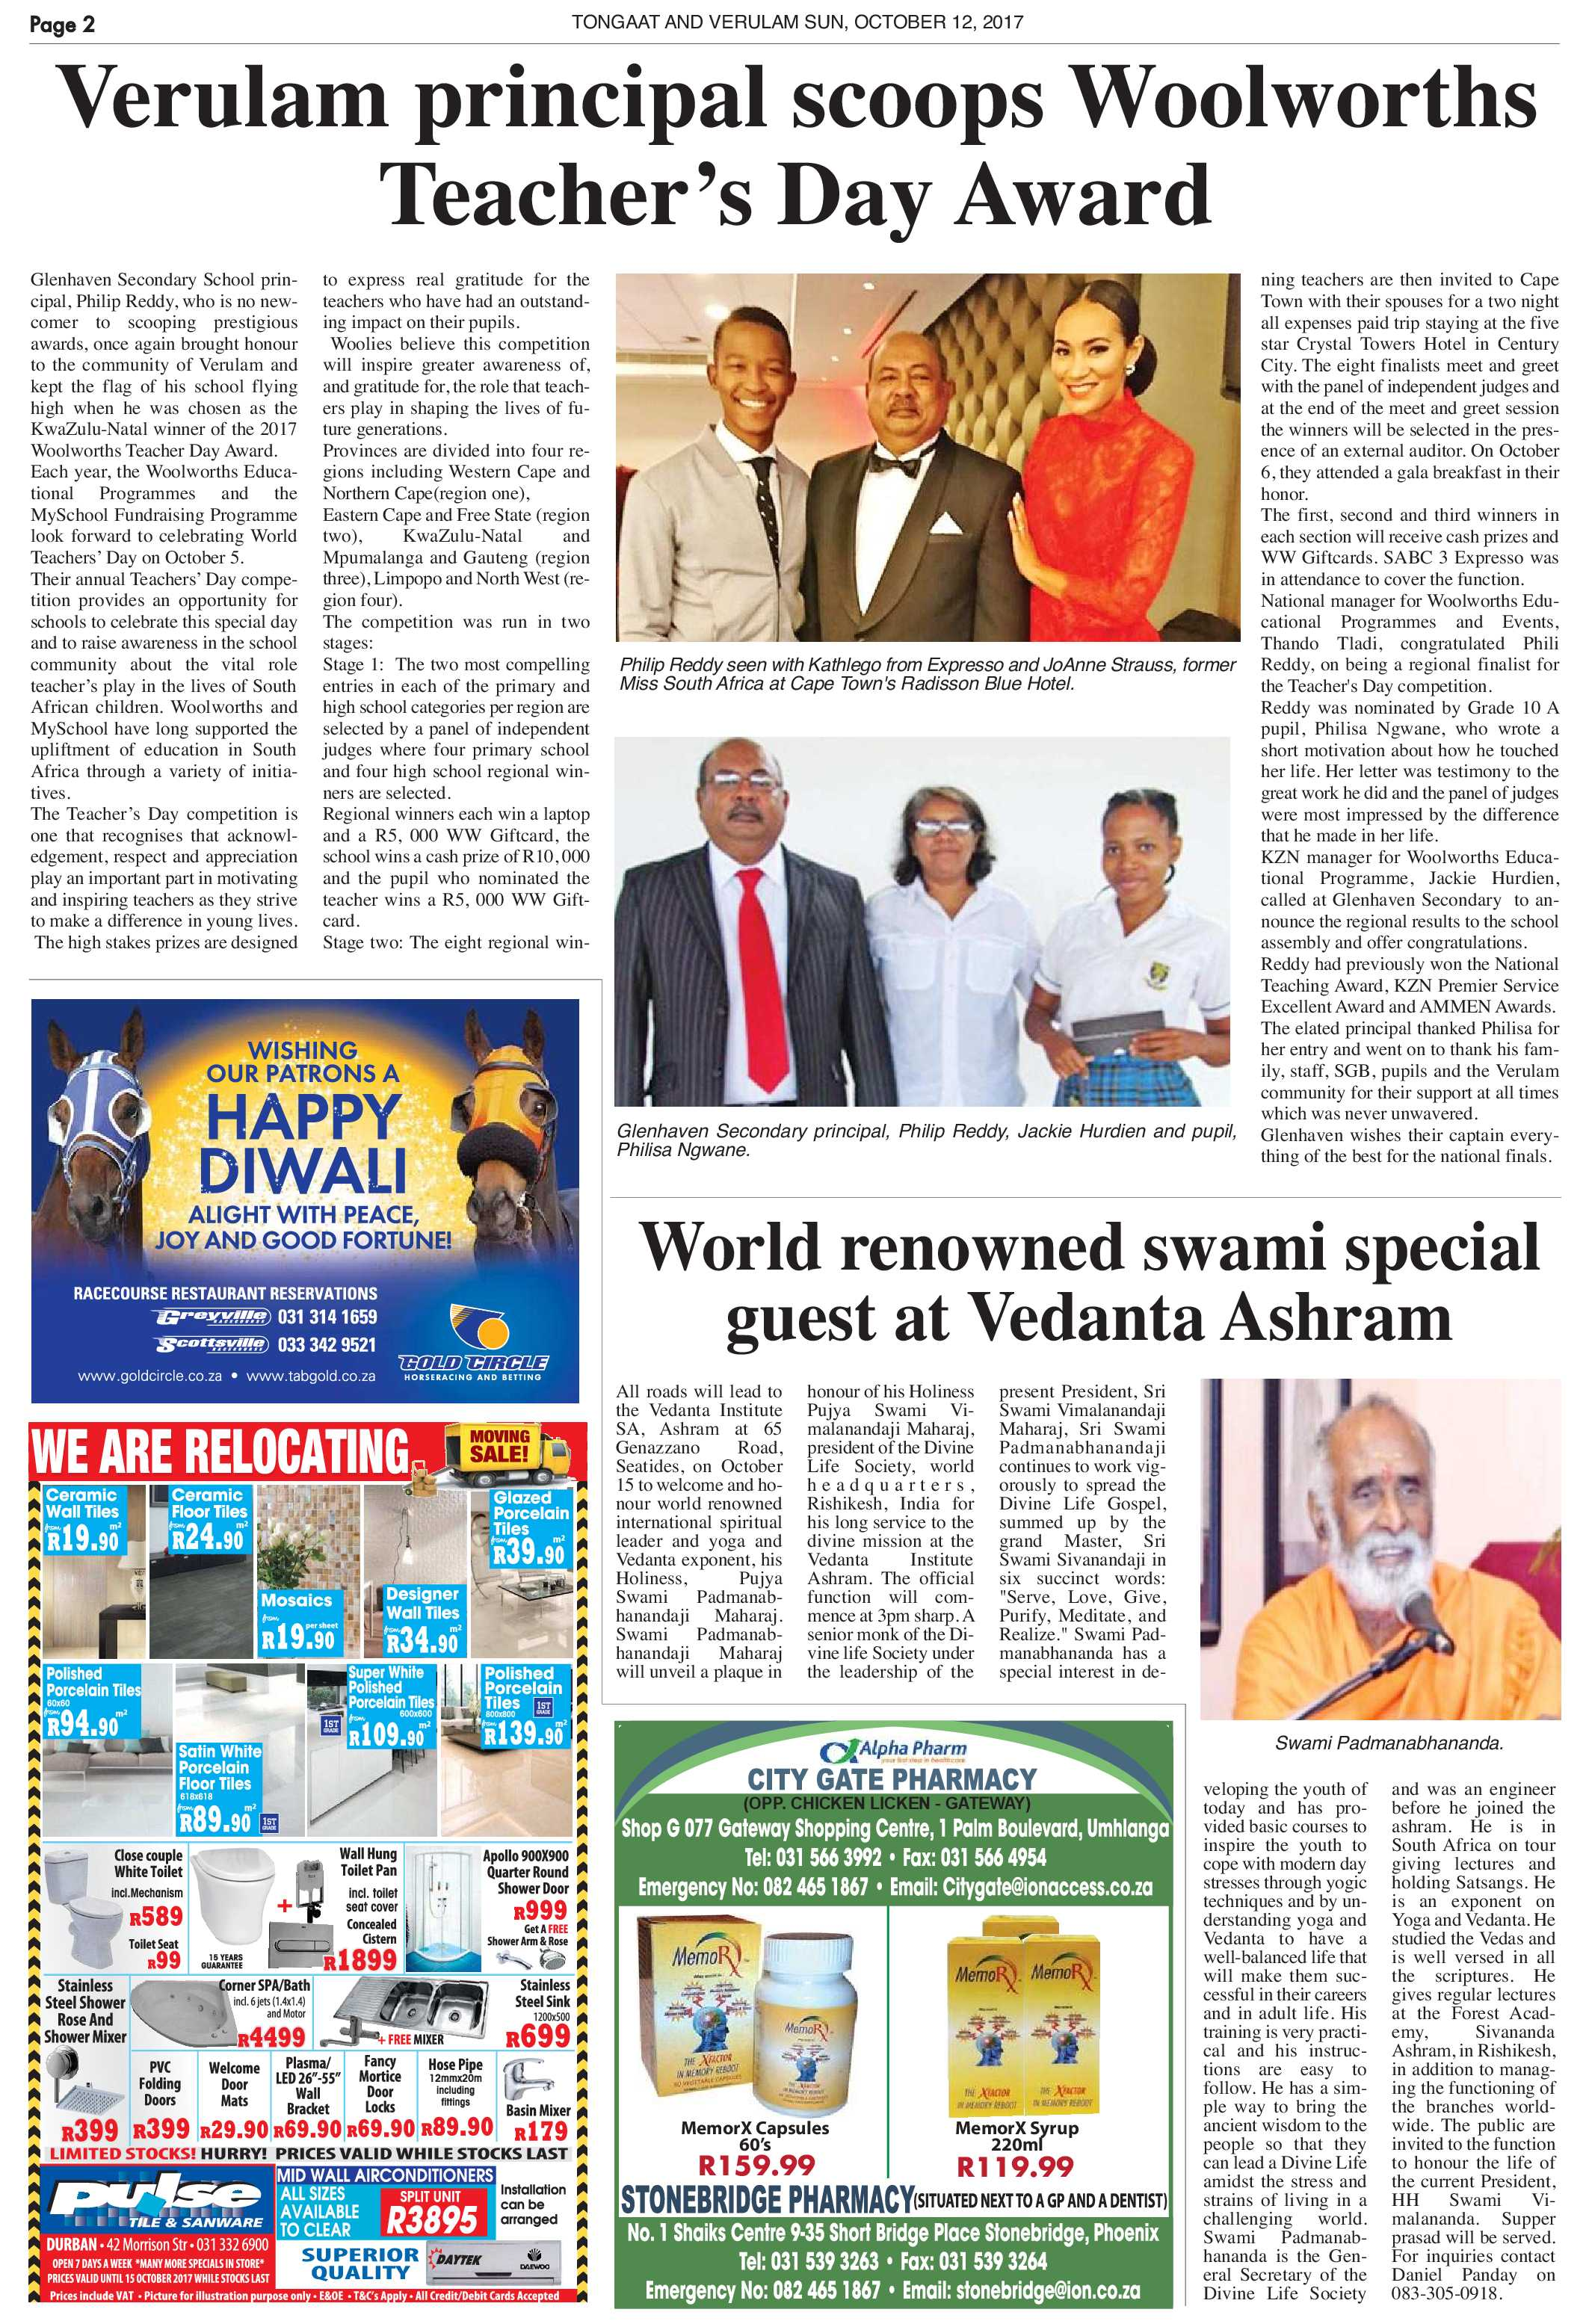 tongaat-verulam-sun-october-12-epapers-page-2